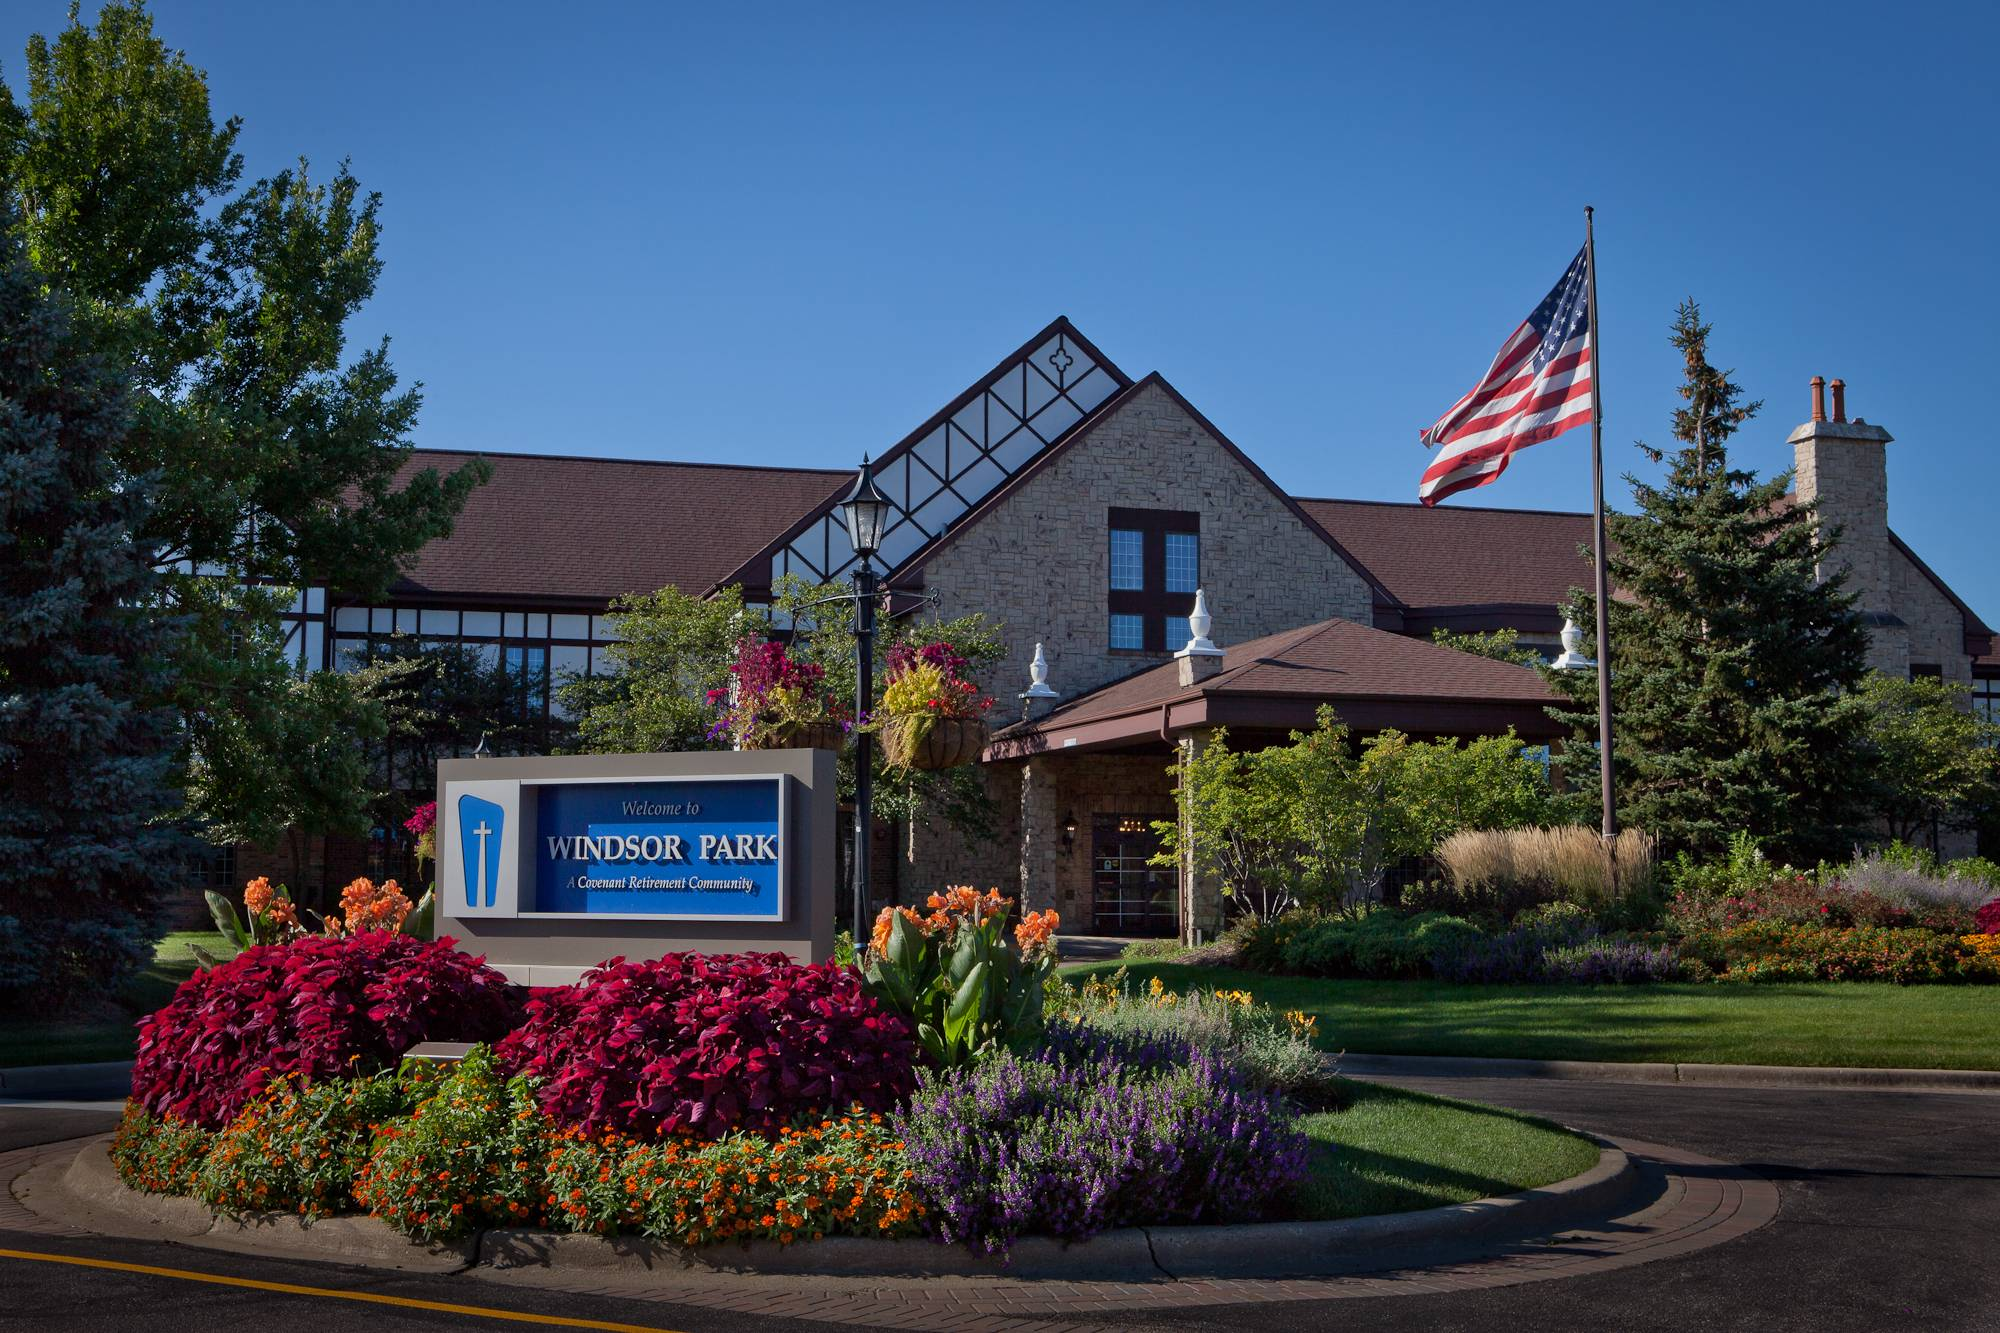 Windsor Park, A Covenant Retirement Community in Carol Stream is a faith-based retirement community located on 60 scenic acres in the western suburbs of Chicago. The public is welcome to attend many of the community's outstanding events.